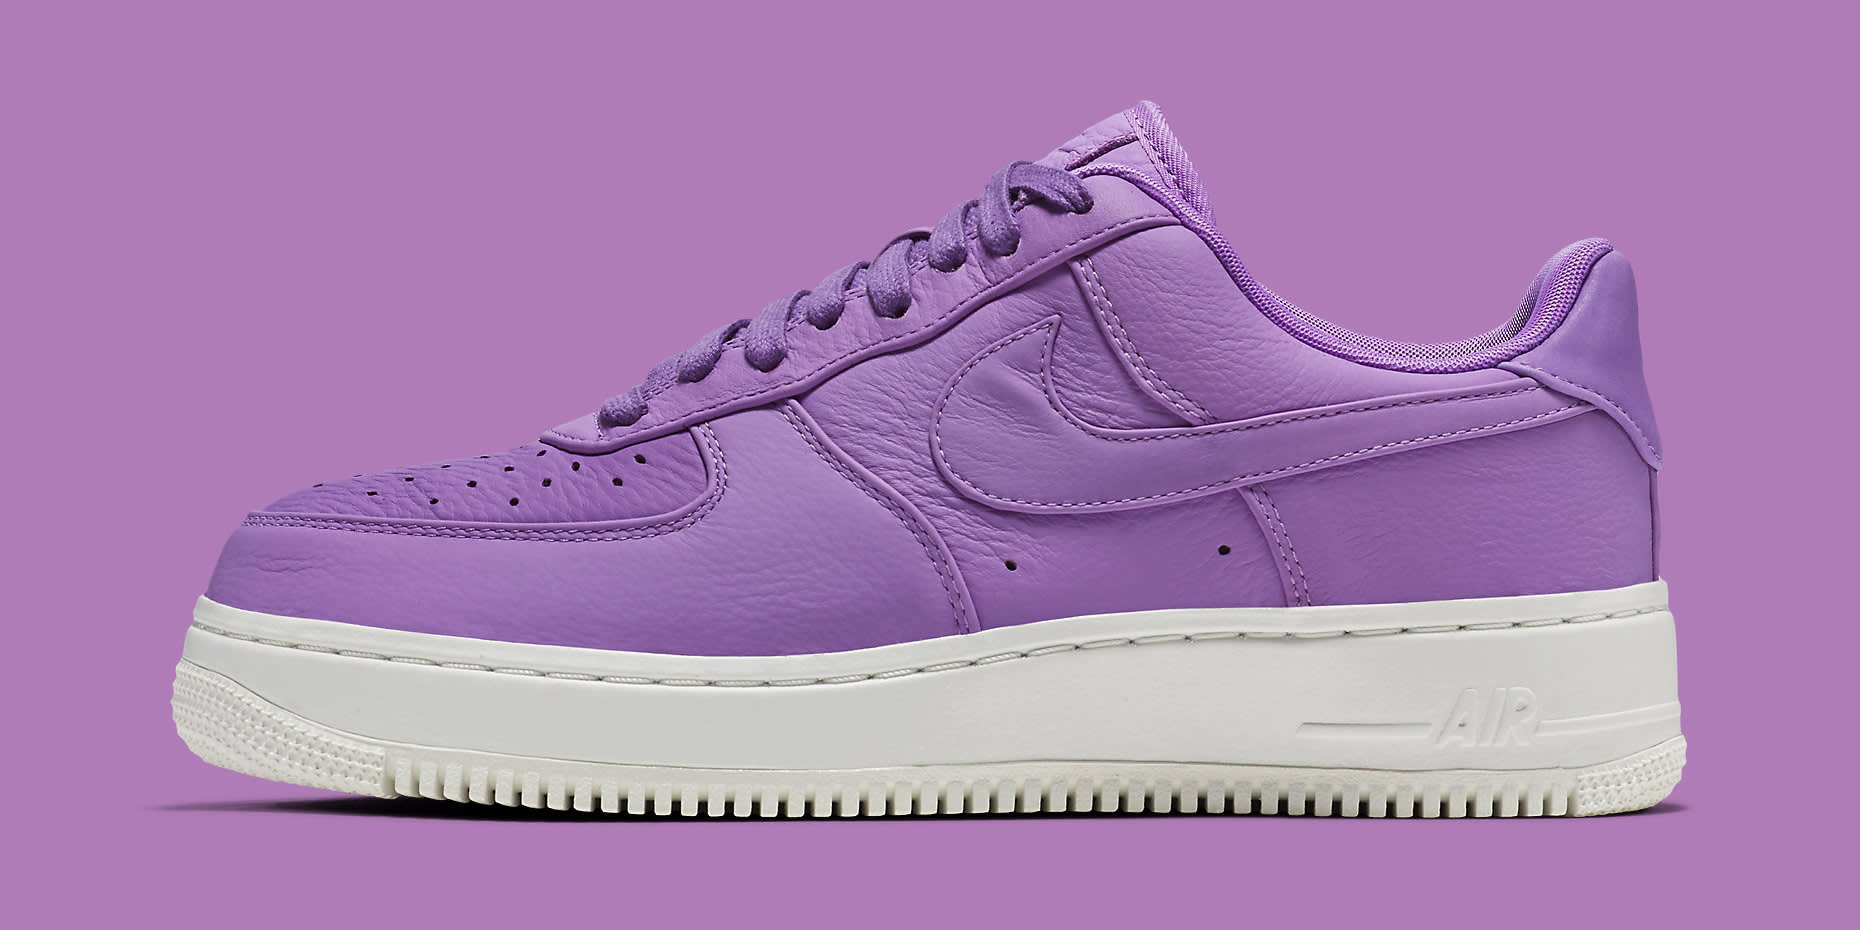 Nike Air Force 1 Low Purple Stardust 905618-500 Profile